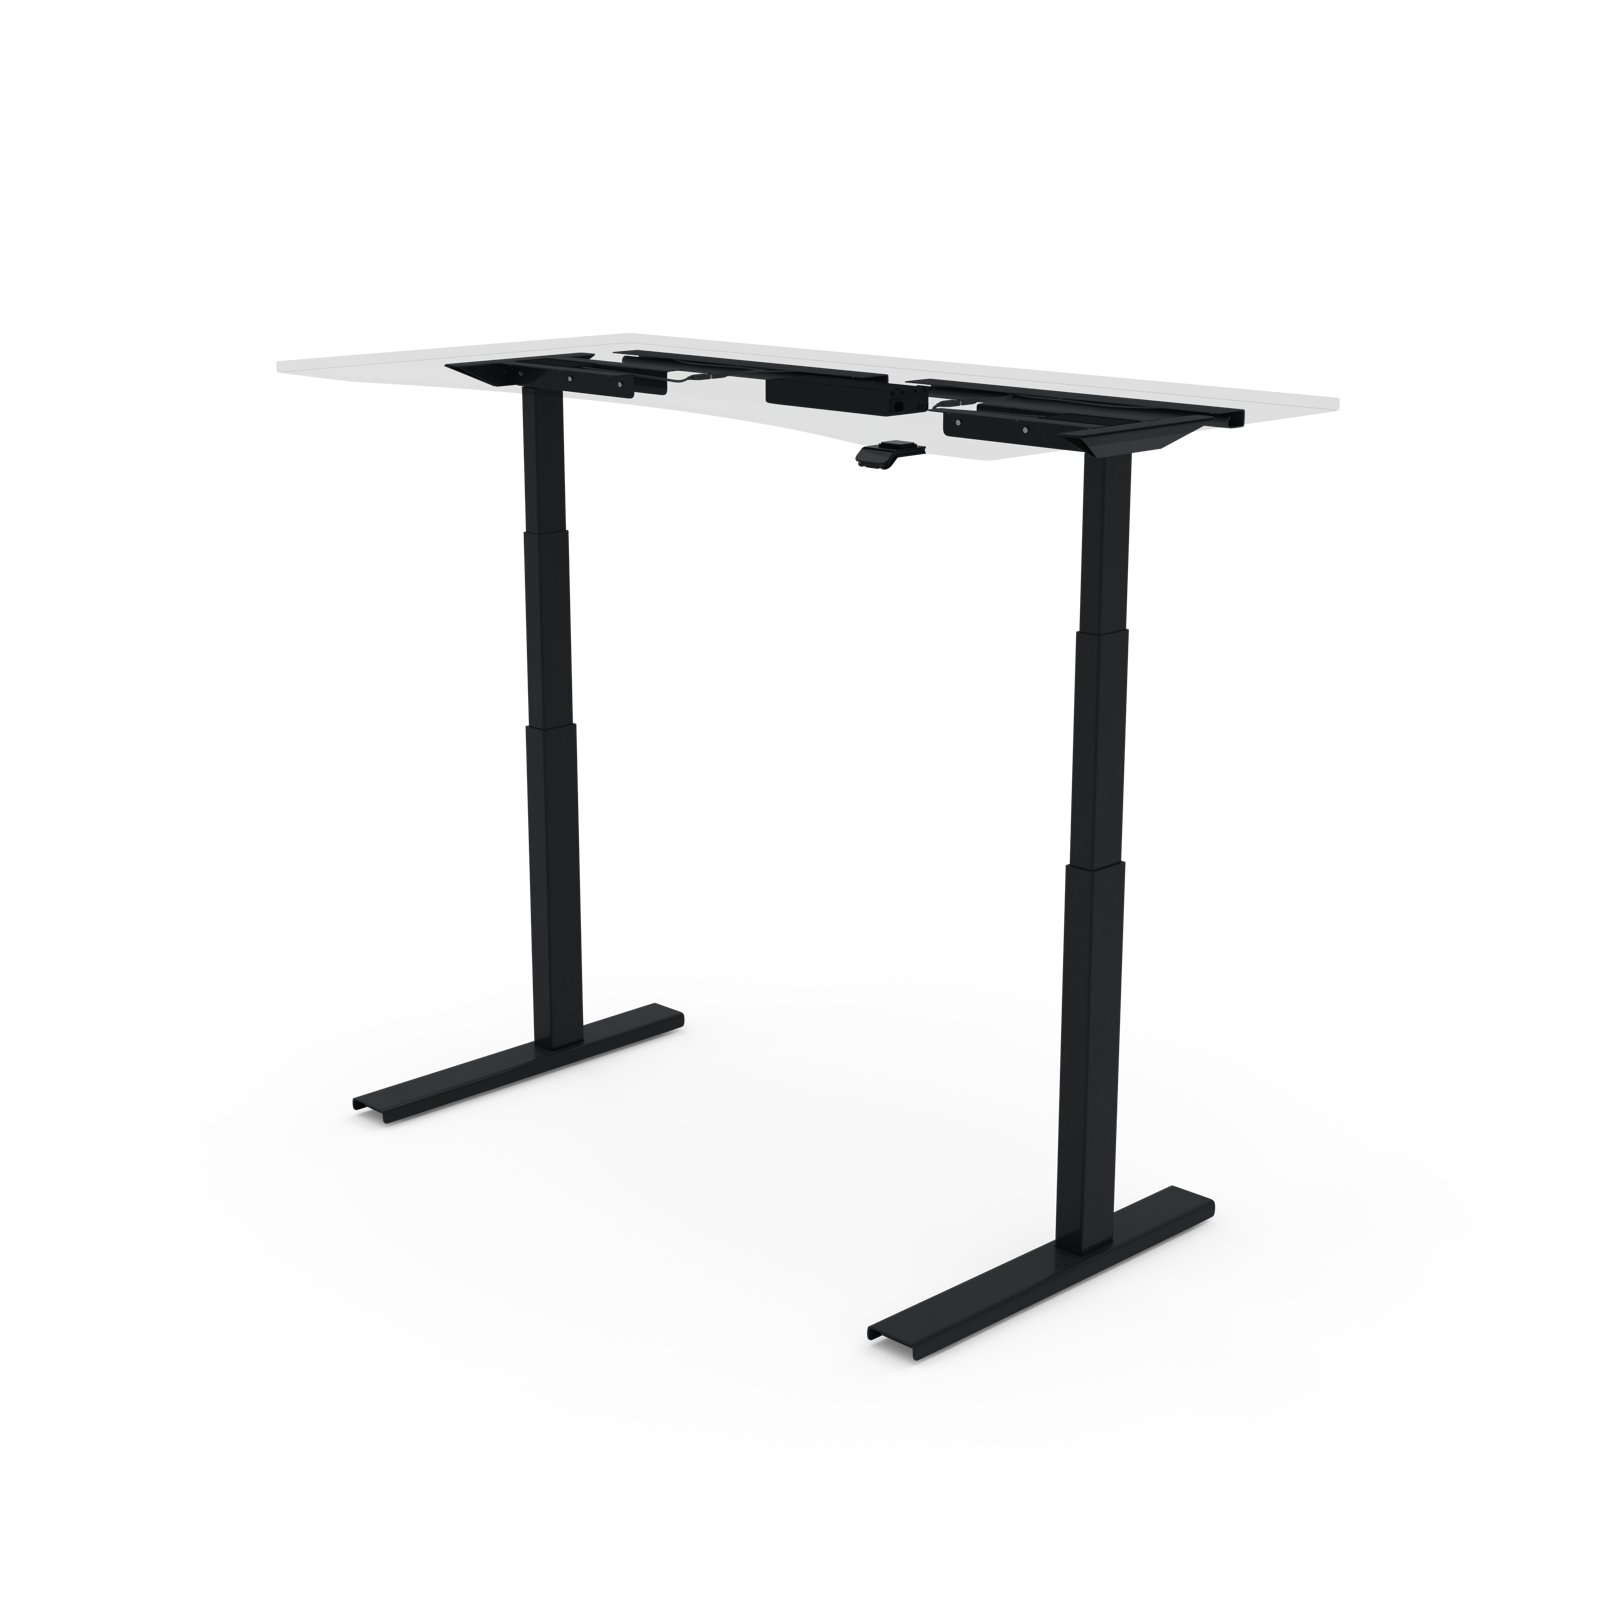 UPDESK Pro Frame Only 2-Leg DIY Electric Adjustable Standing Desk Frame w/ 22